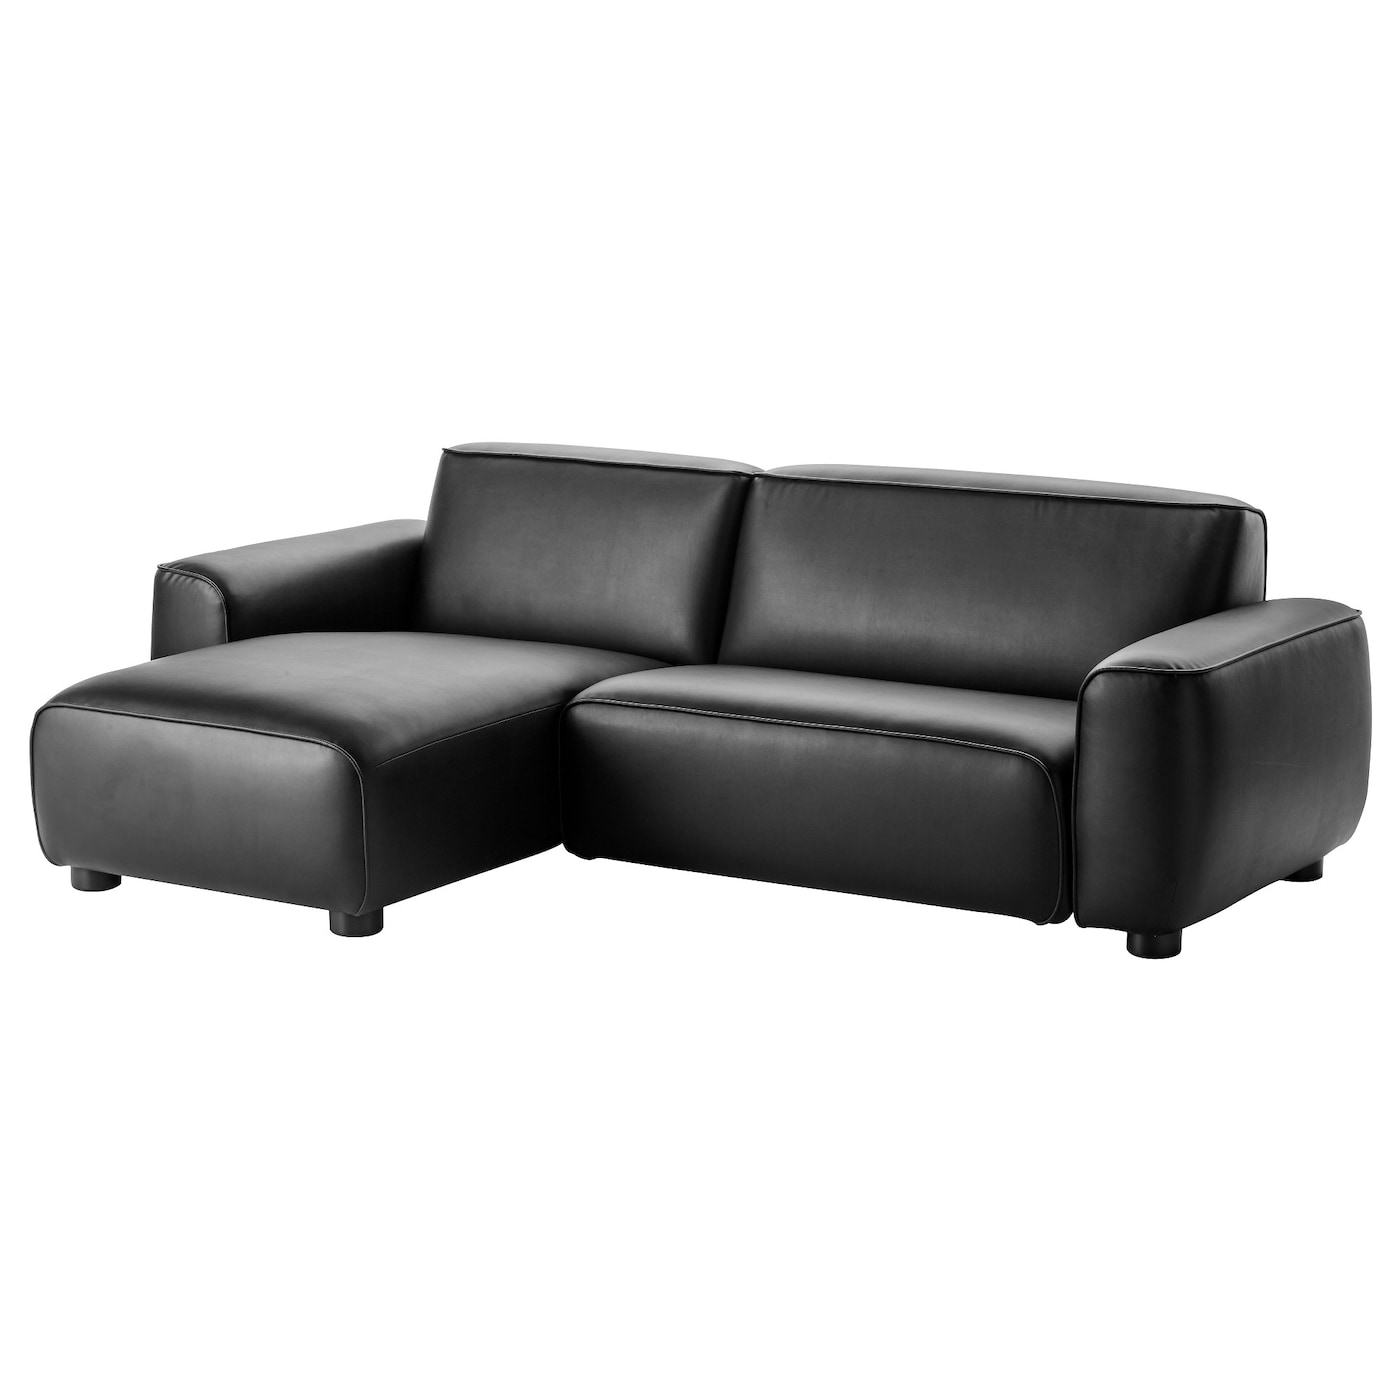 kunstlededersofa dagarn mit recamiere von ikea nur 699 00 cherry m bel ikea. Black Bedroom Furniture Sets. Home Design Ideas